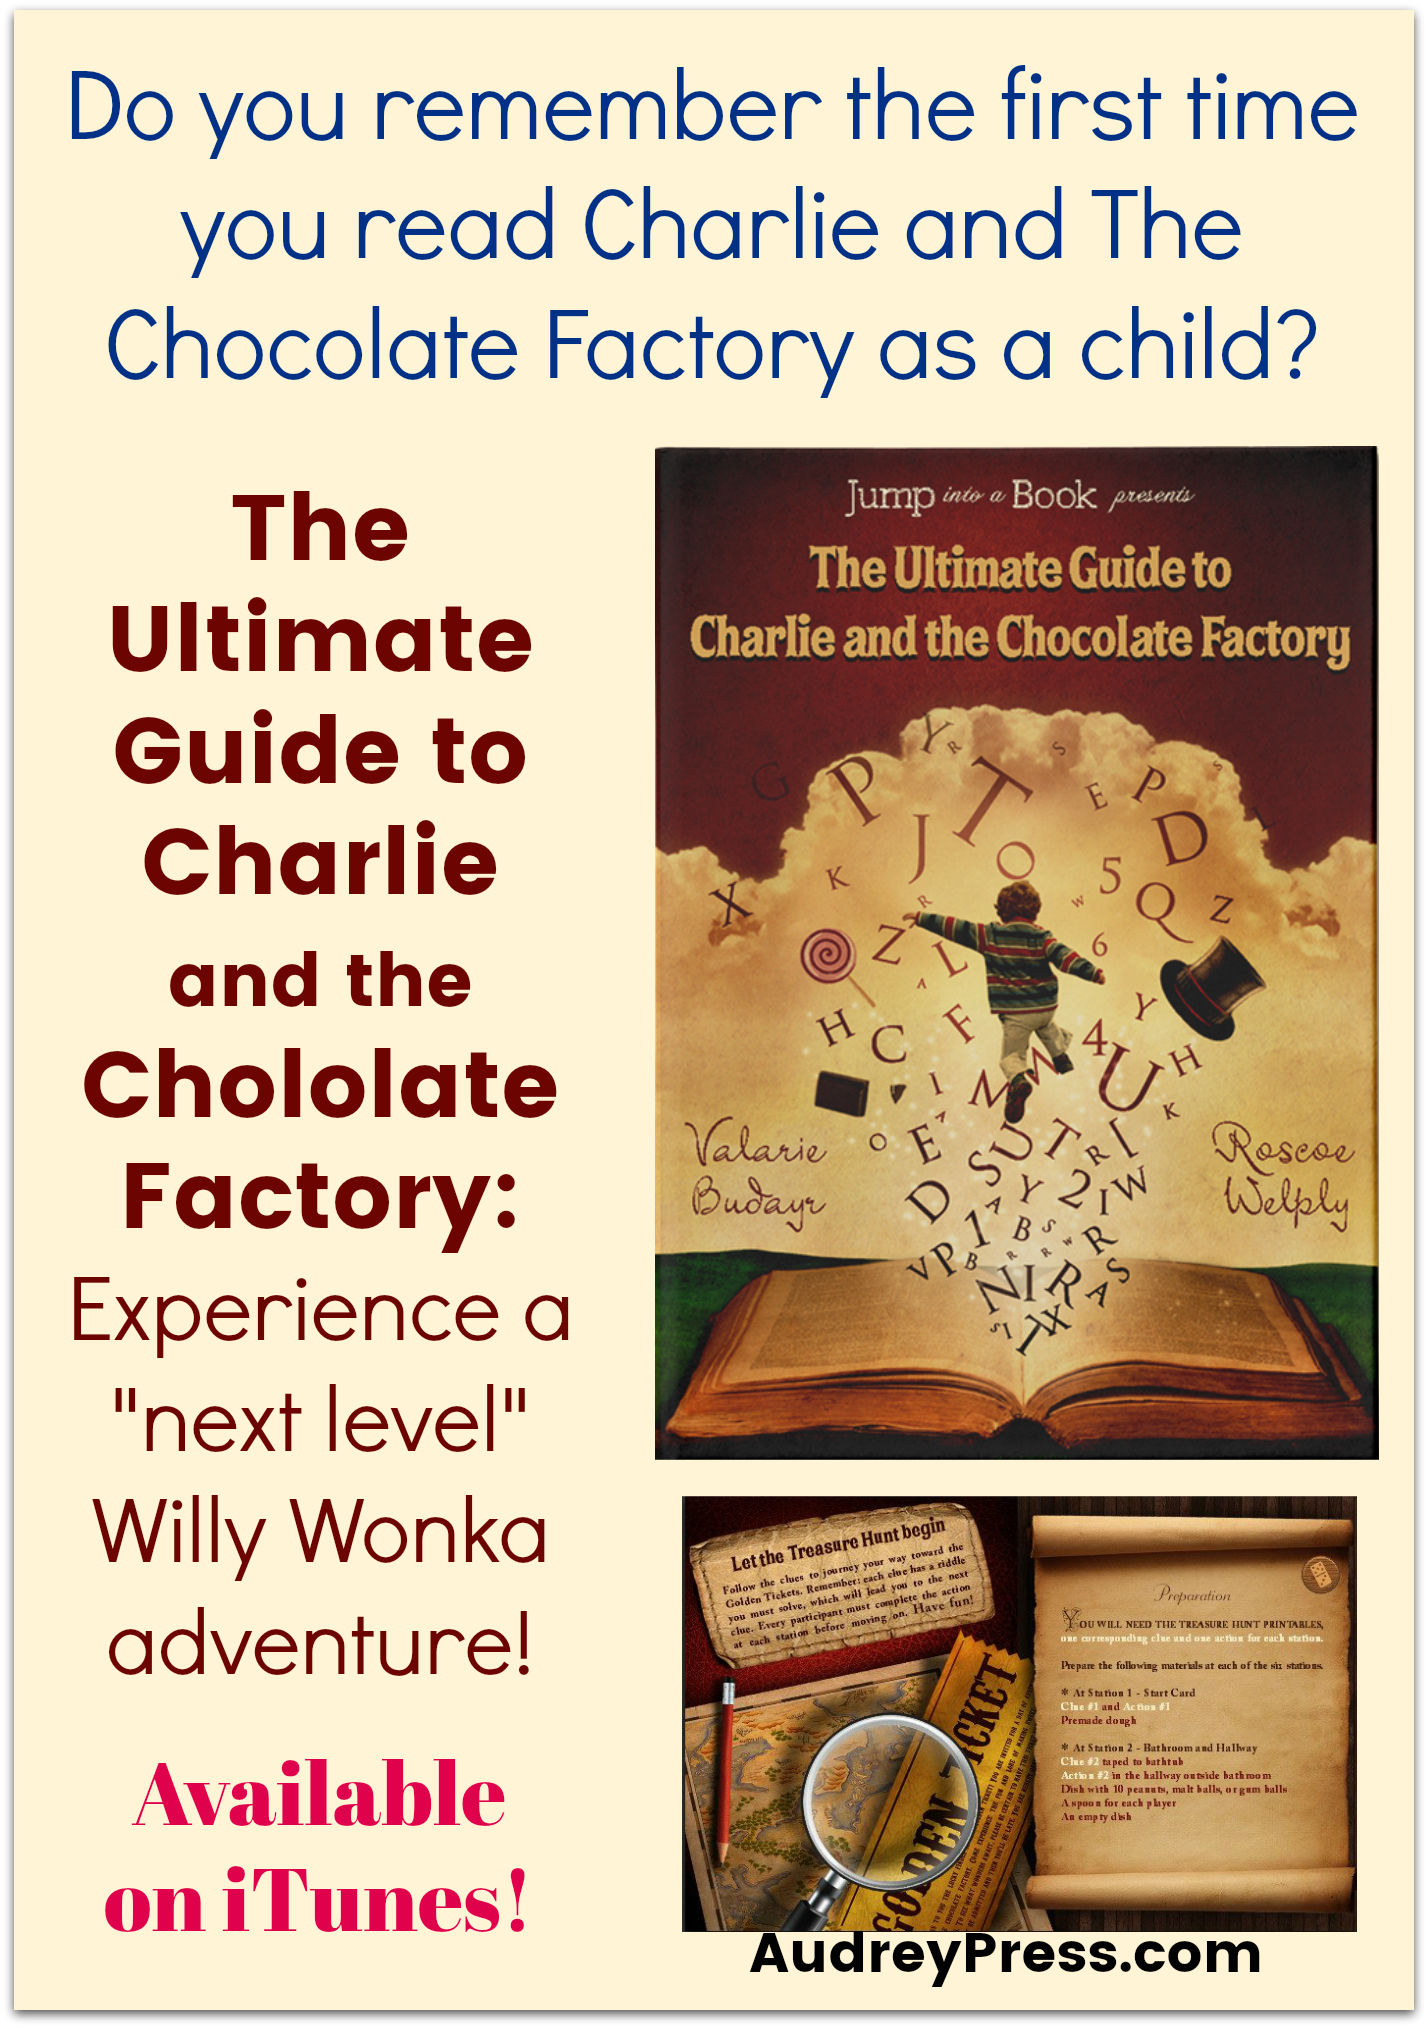 A Next Level Charlie And The Chocolate Factory Adventure